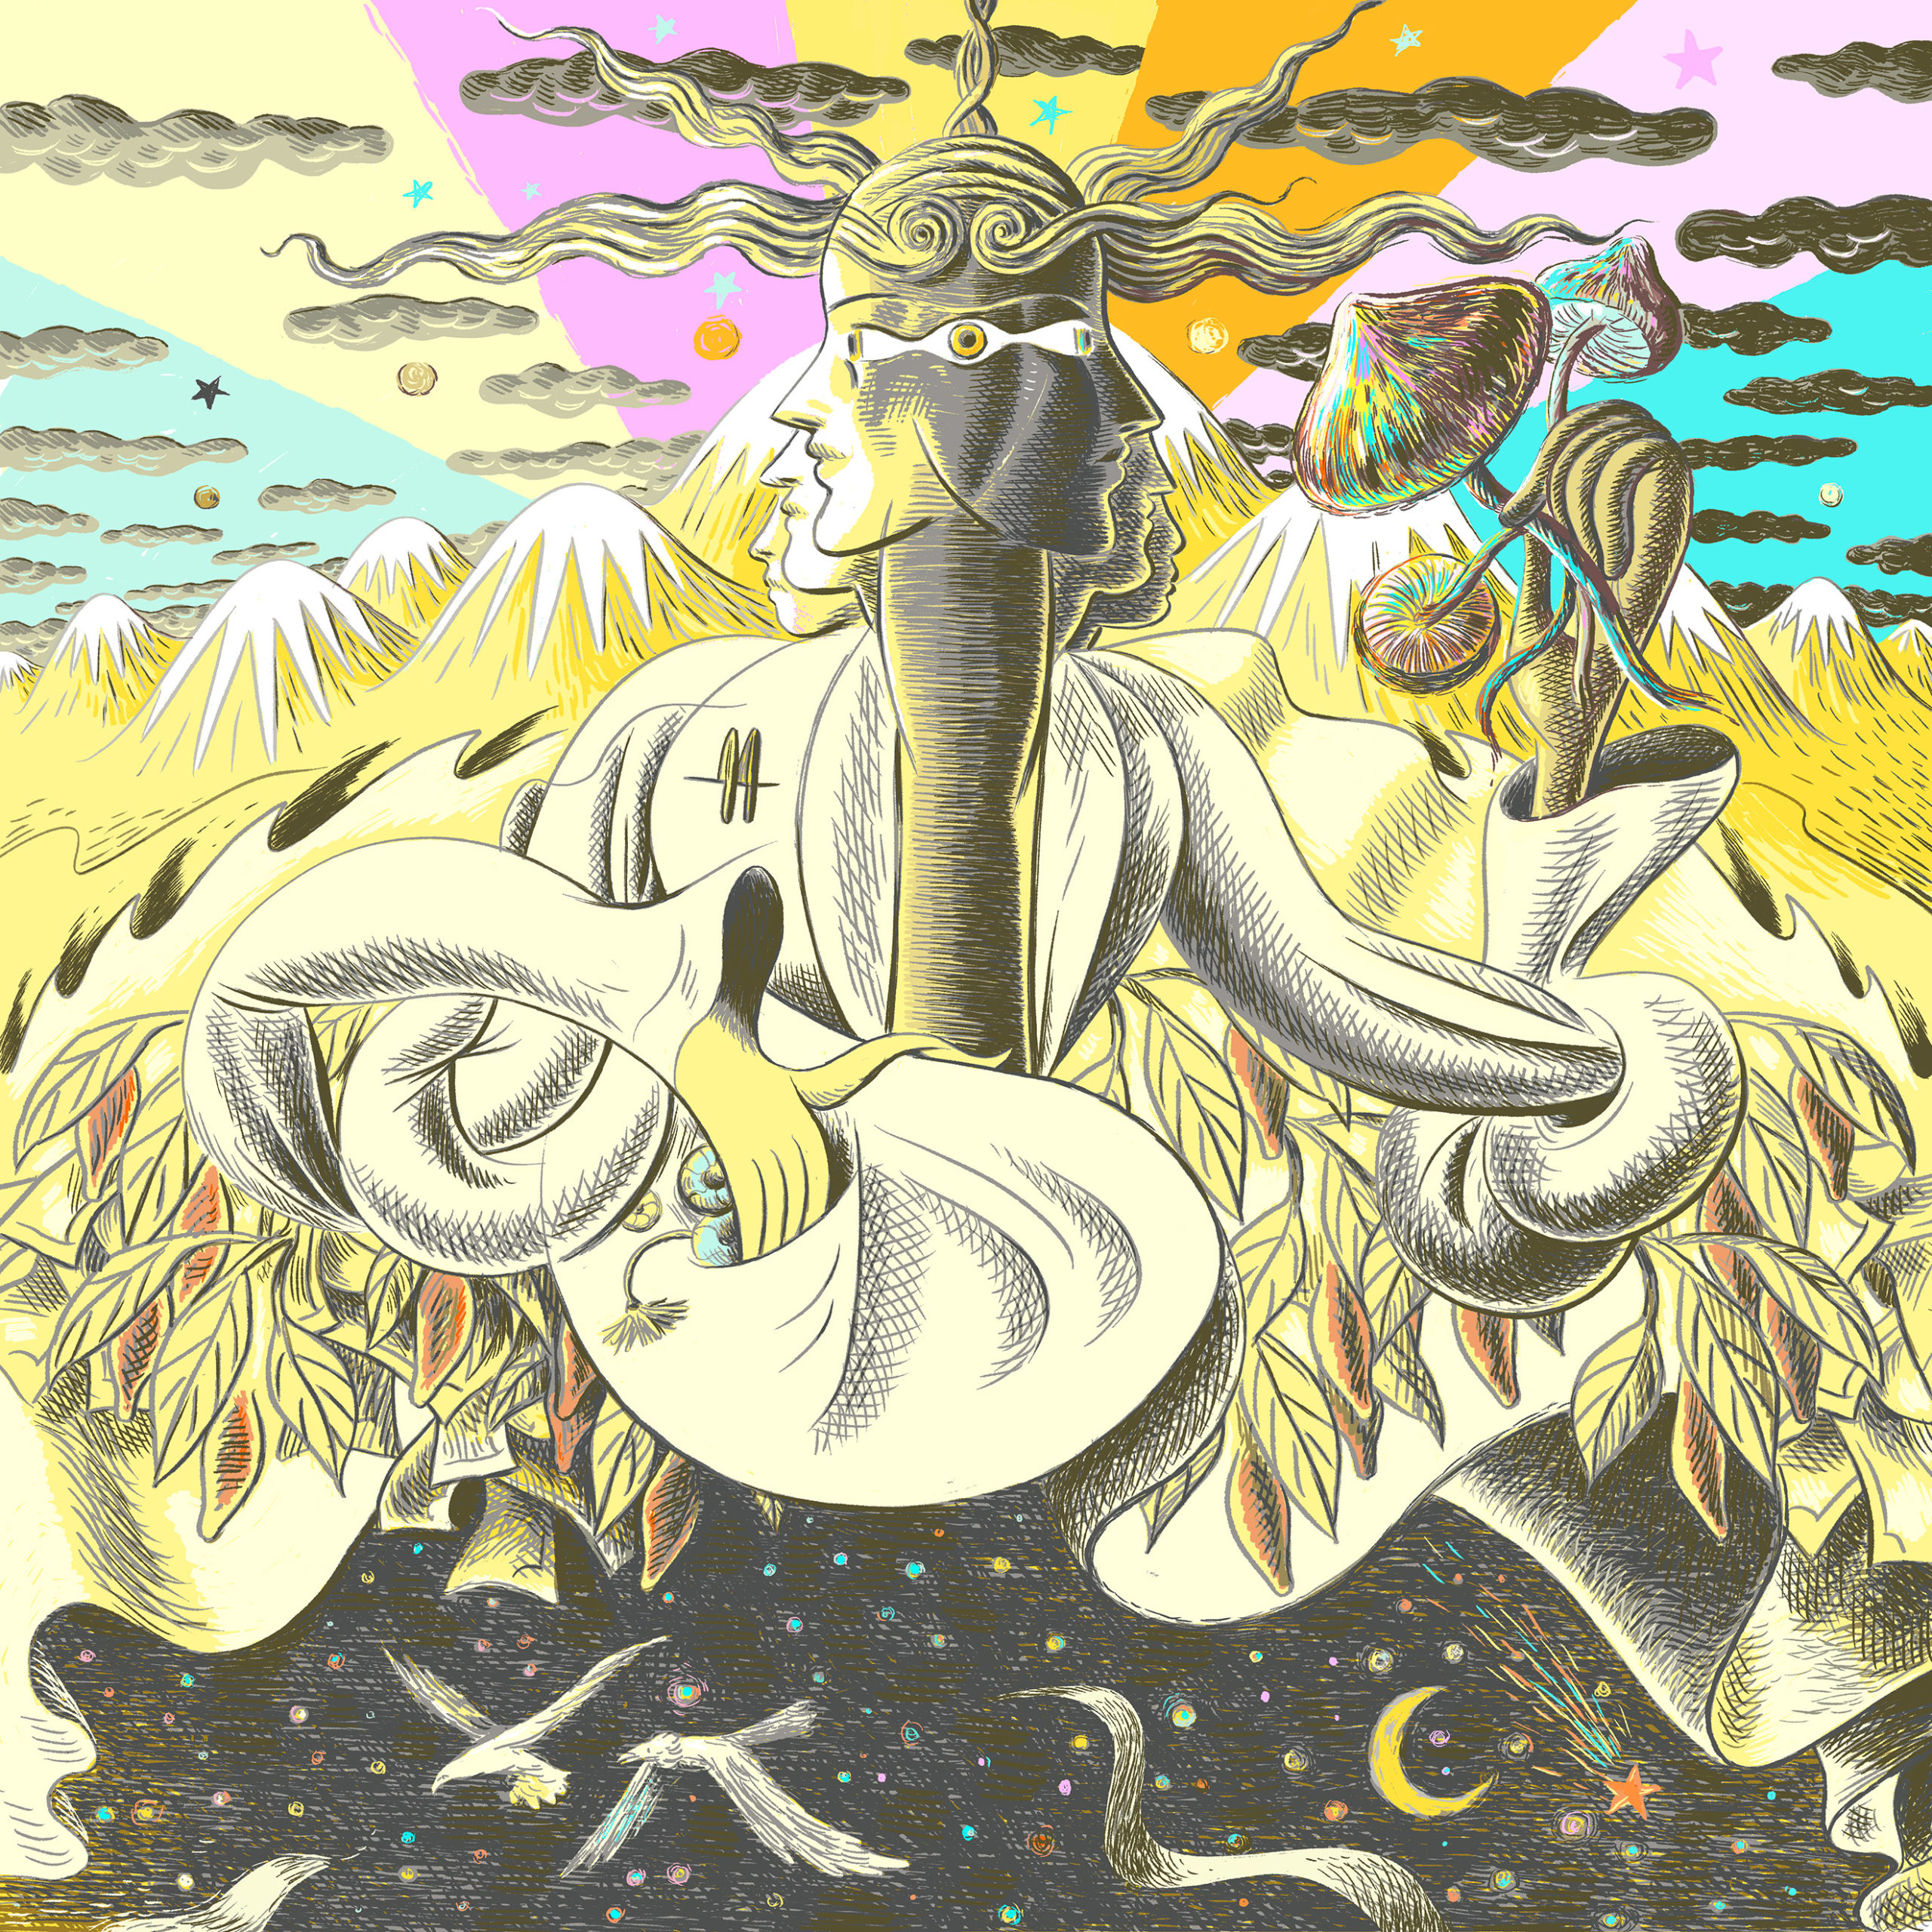 Psychedelic illustration of person holding mushrooms, in the mountains